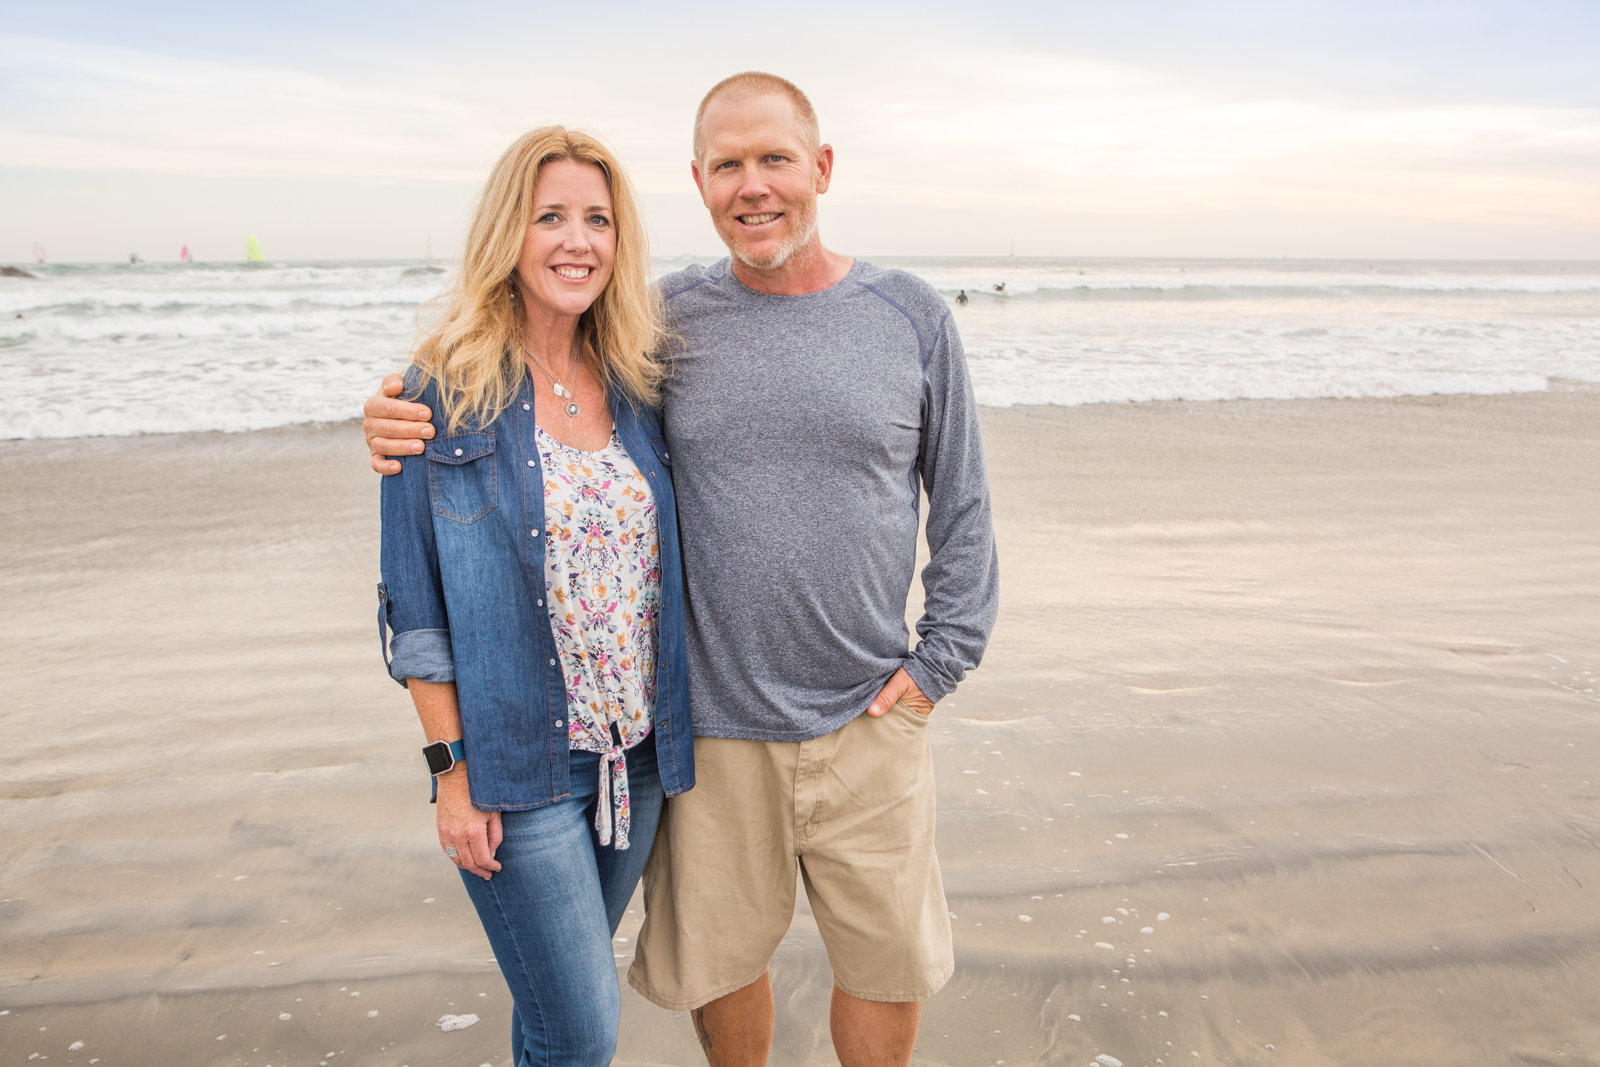 family photos taken at Oceanside Harbor by a professional photographer in San Diego and Oceanside.